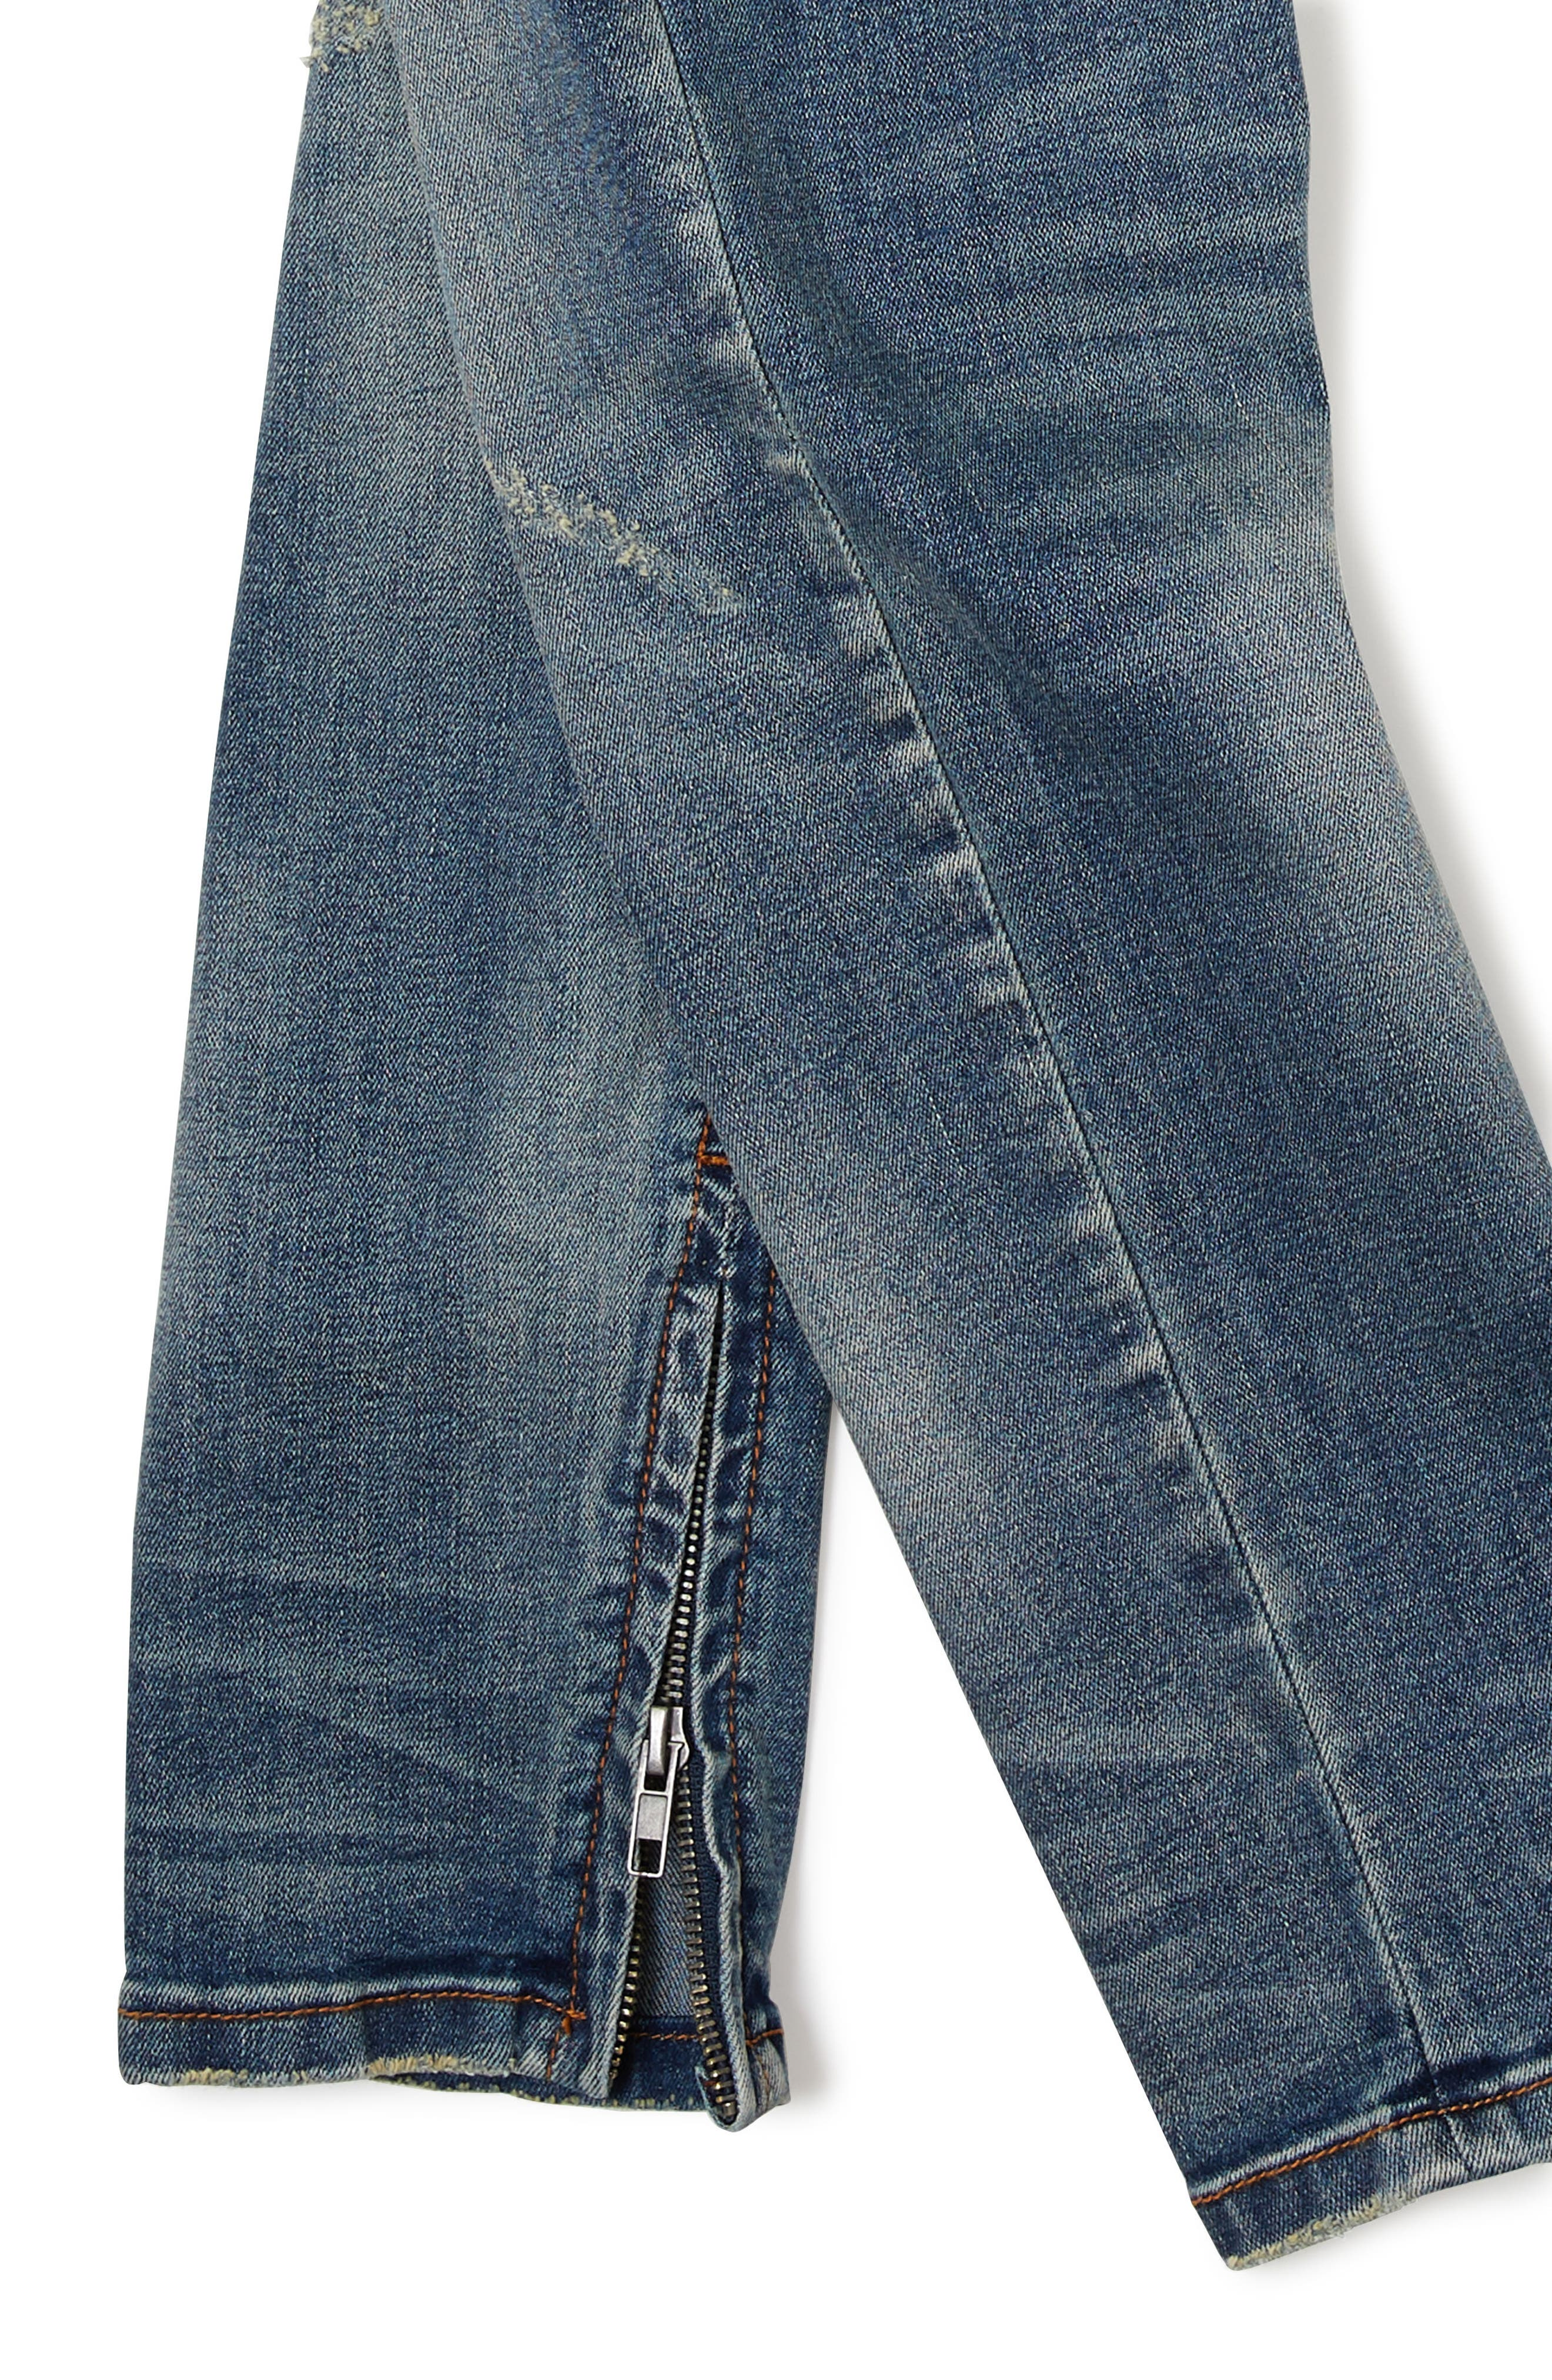 Sand Blasted Moto Skinny Jeans,                             Alternate thumbnail 3, color,                             Dark Wash Denim